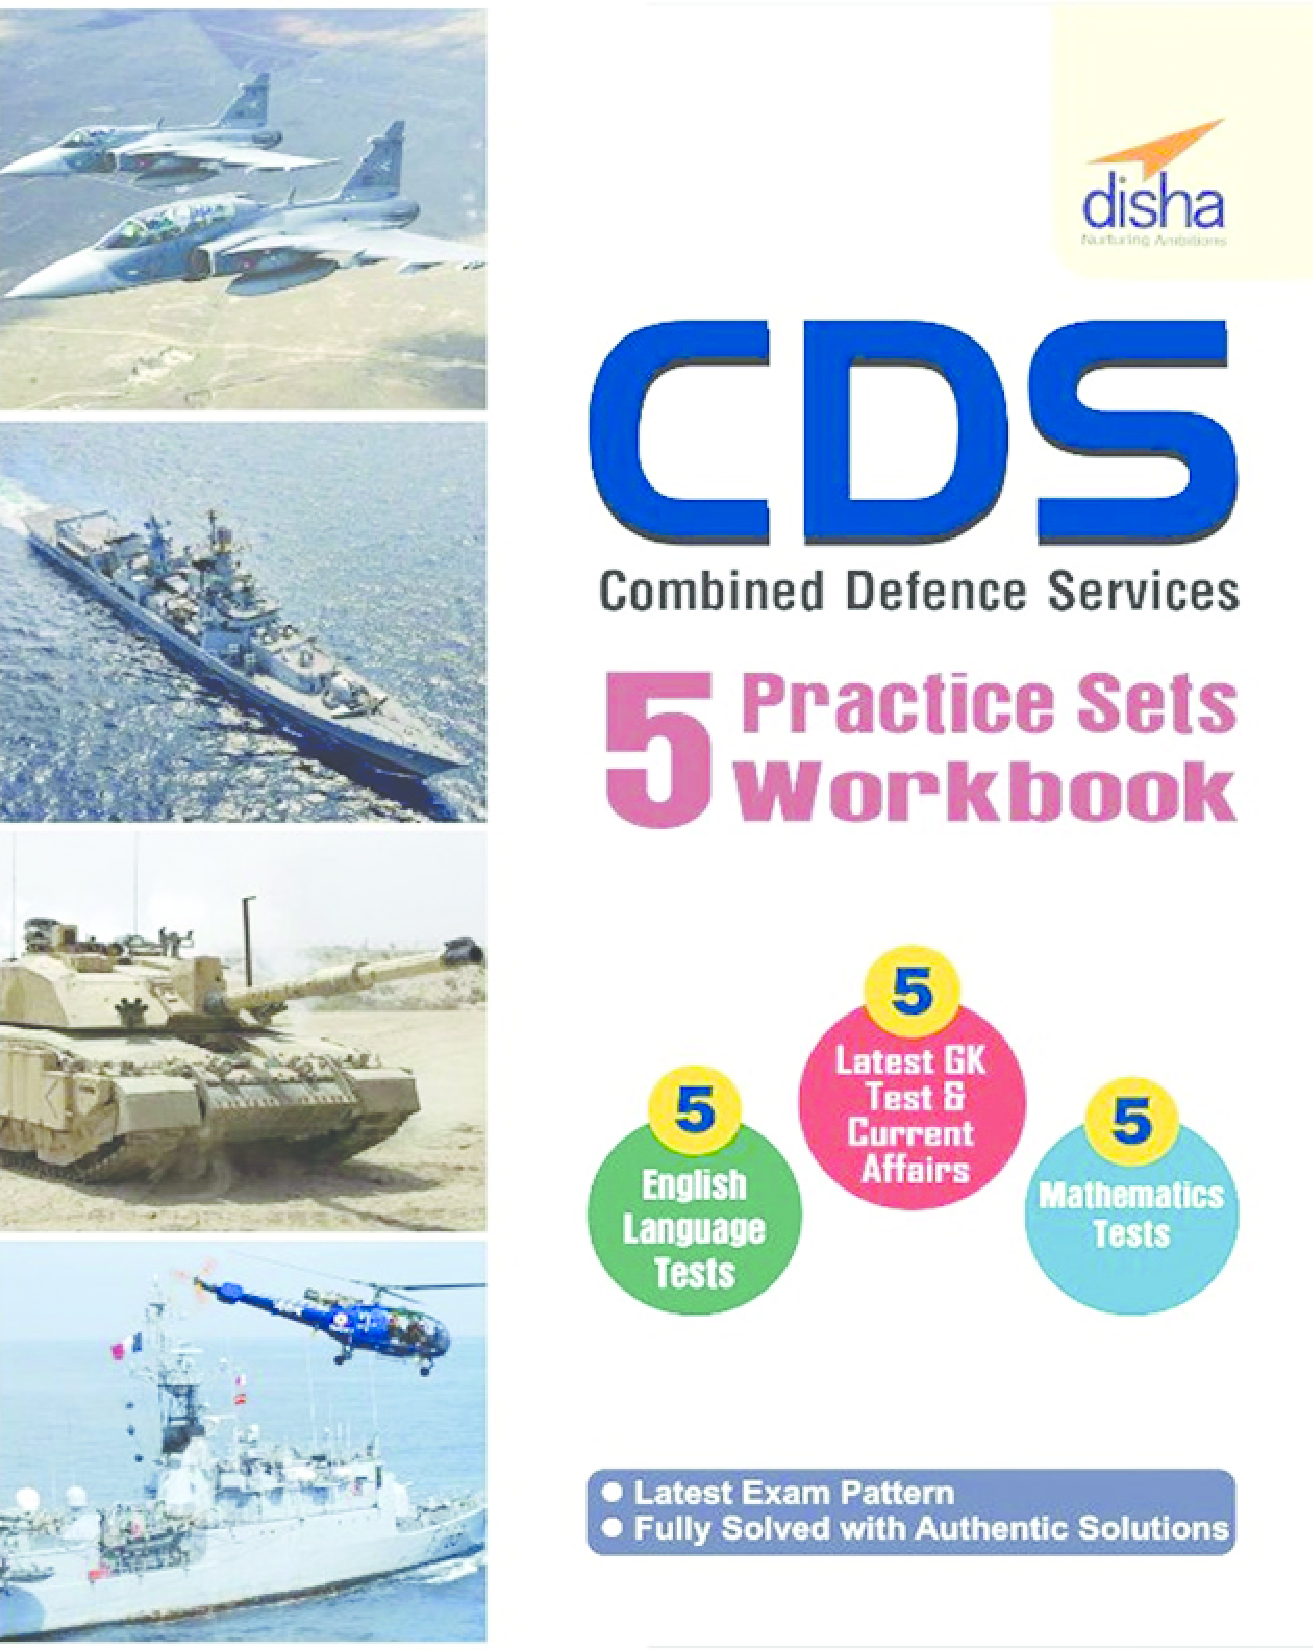 CDS Combined Defence Services 5 Practice Sets Workbook - Page 1